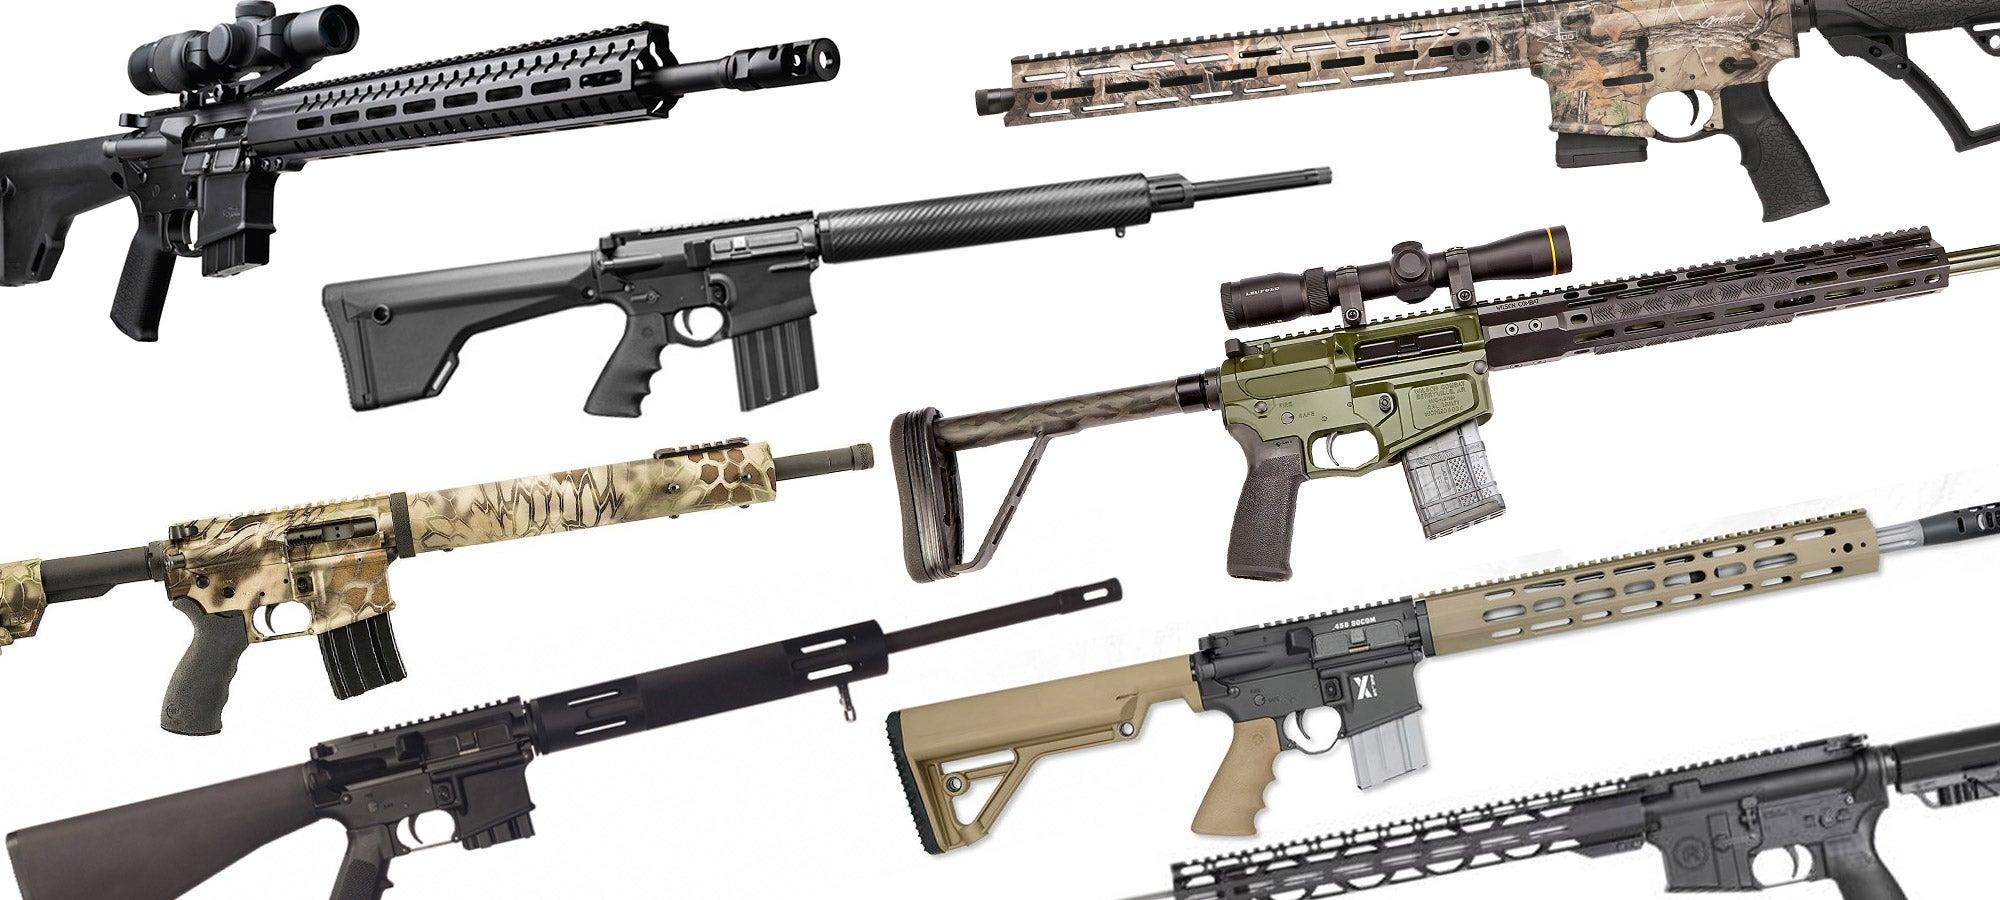 Best AR Rifles for Big Game Hunting